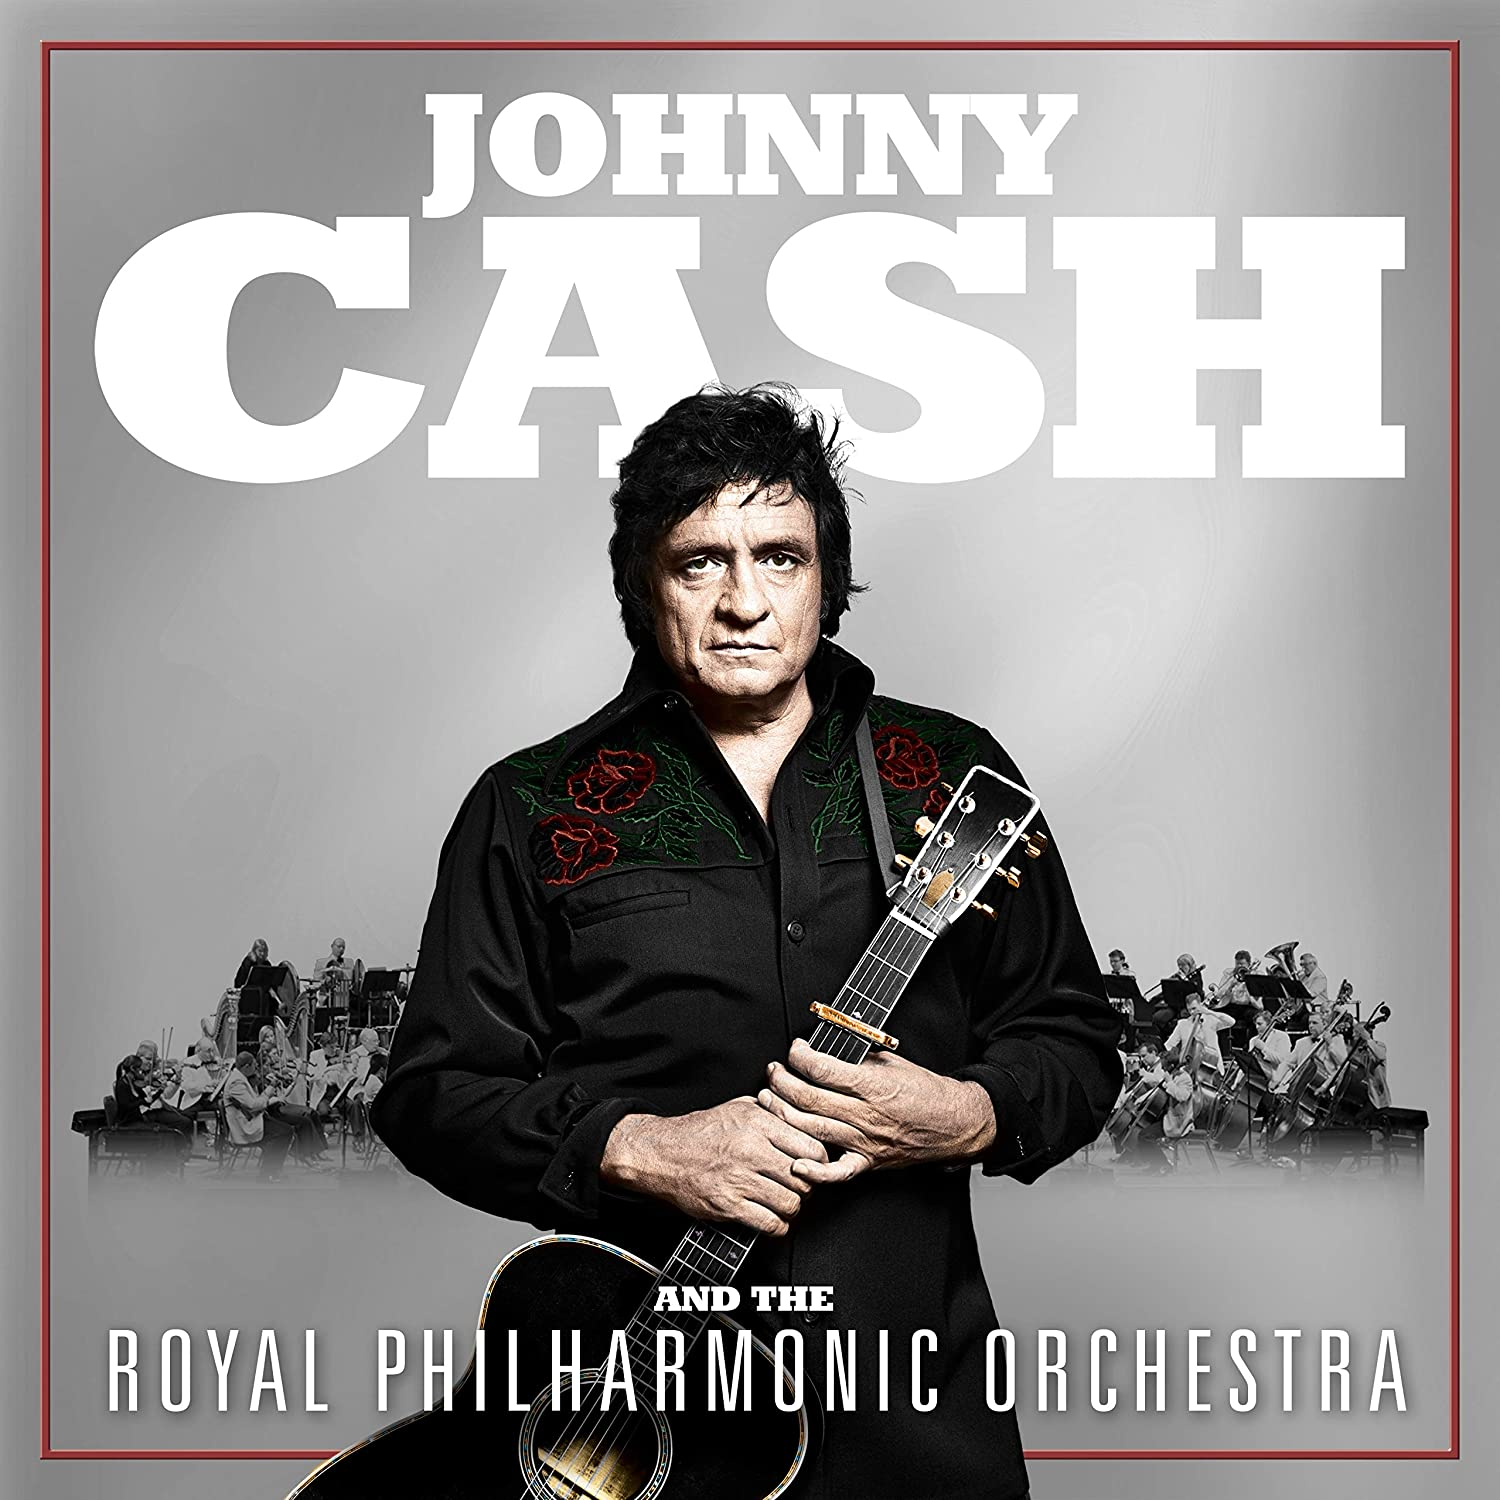 Johnny Cash & The Royal Philharmonic Orchestra  - Johnny Cash & The Royal Philharmonic Orchestra